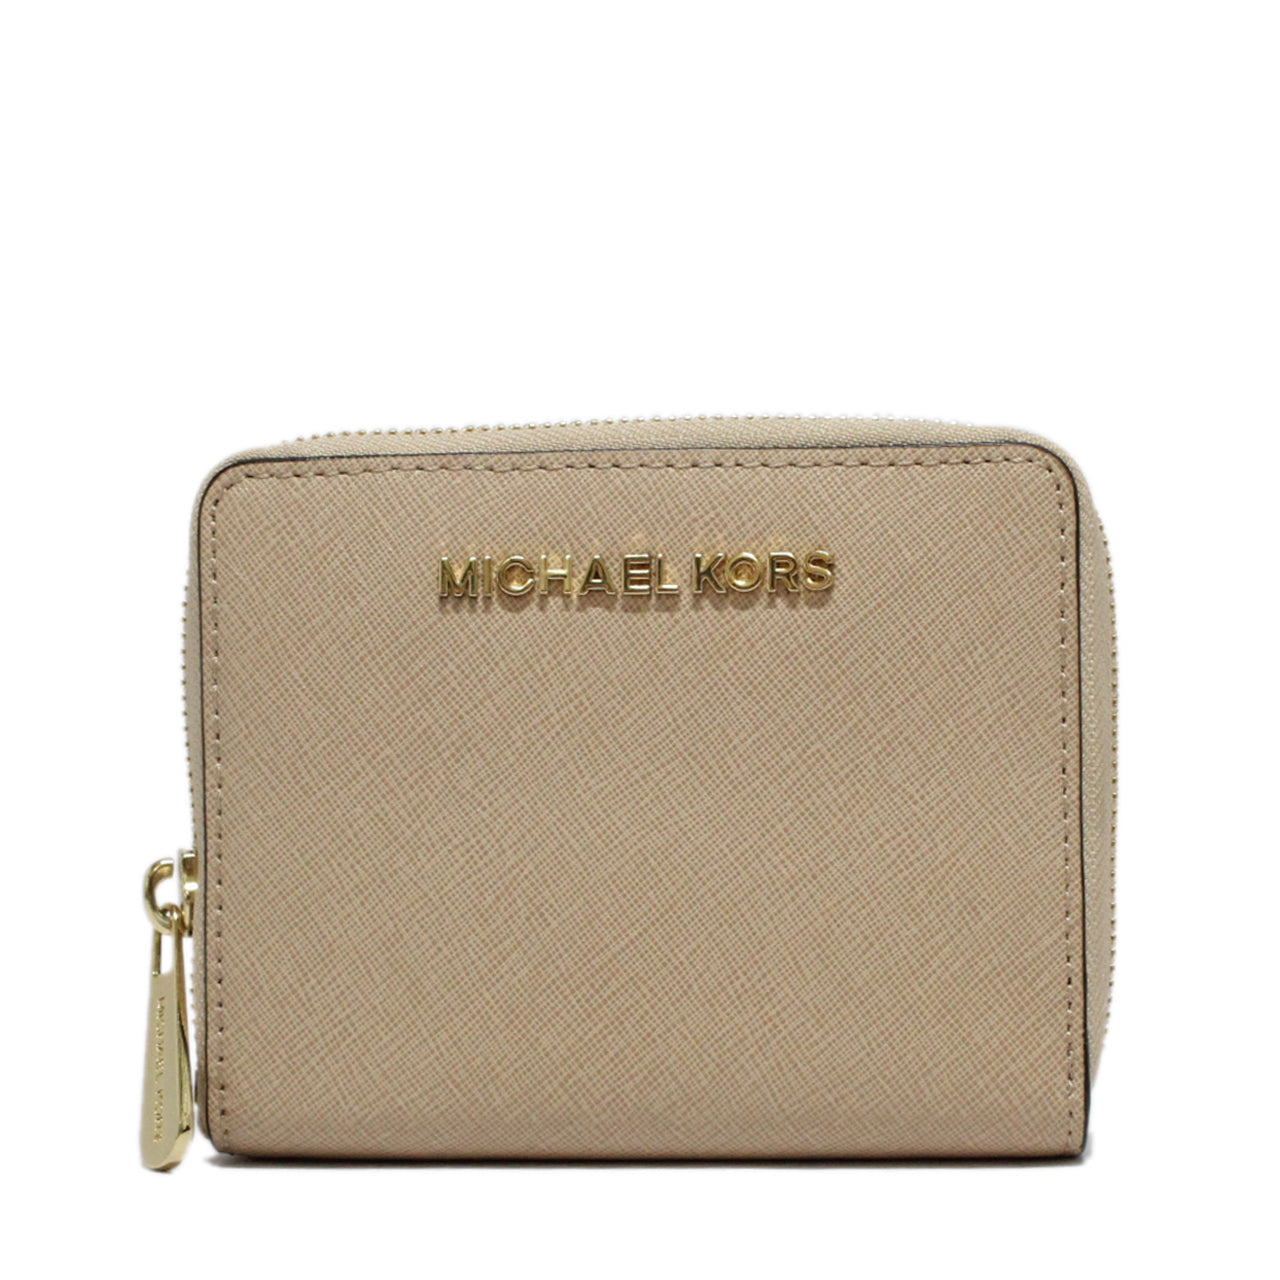 Michael Kors Jet Set Travel Zip-Around Saffiano Leather Wallet